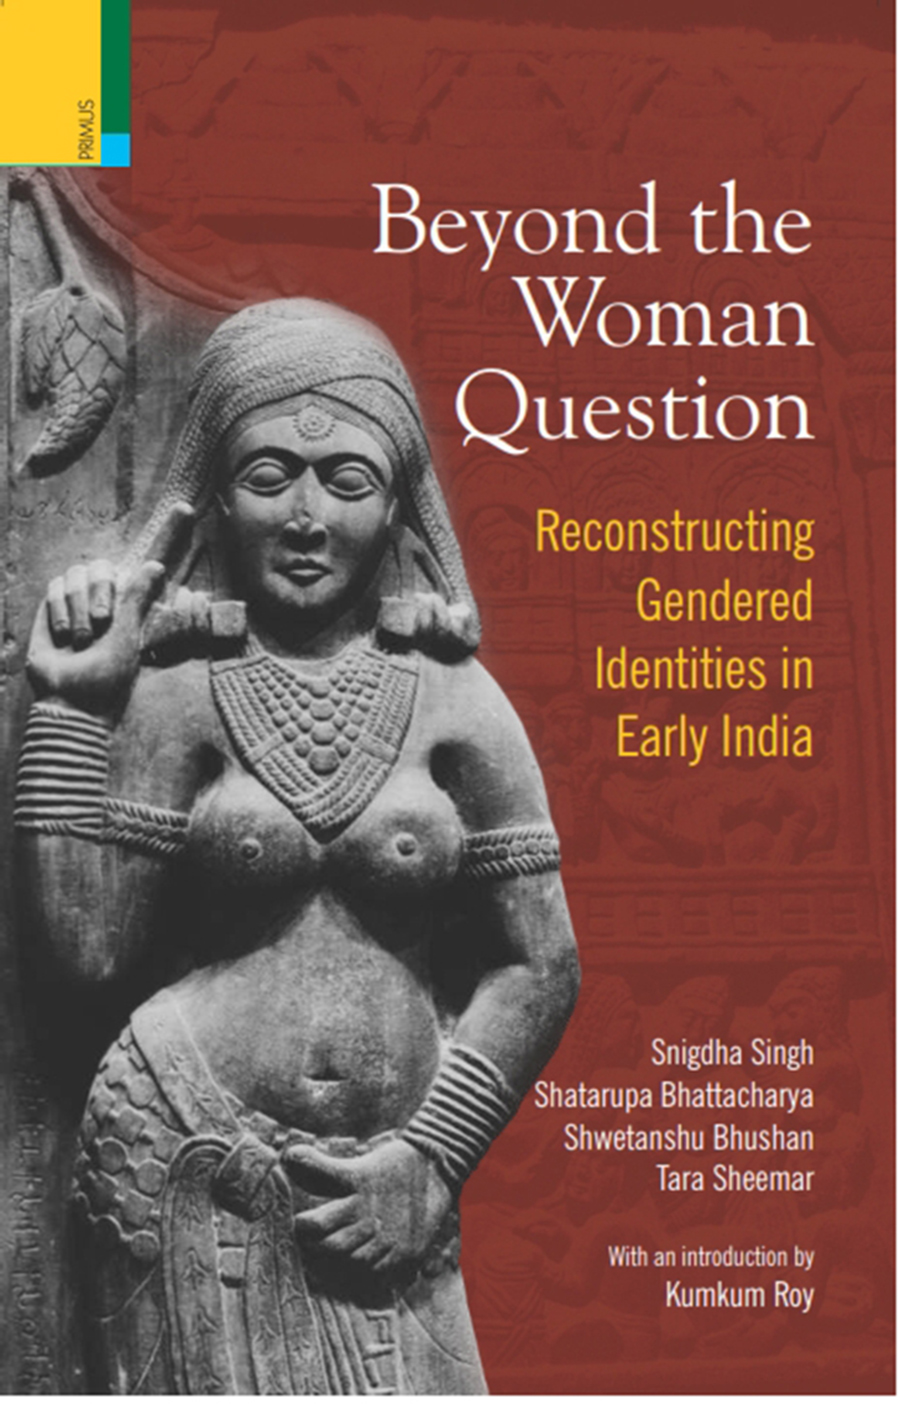 Beyond the Women in Question: Reconstructing Gendered Identities in Early India